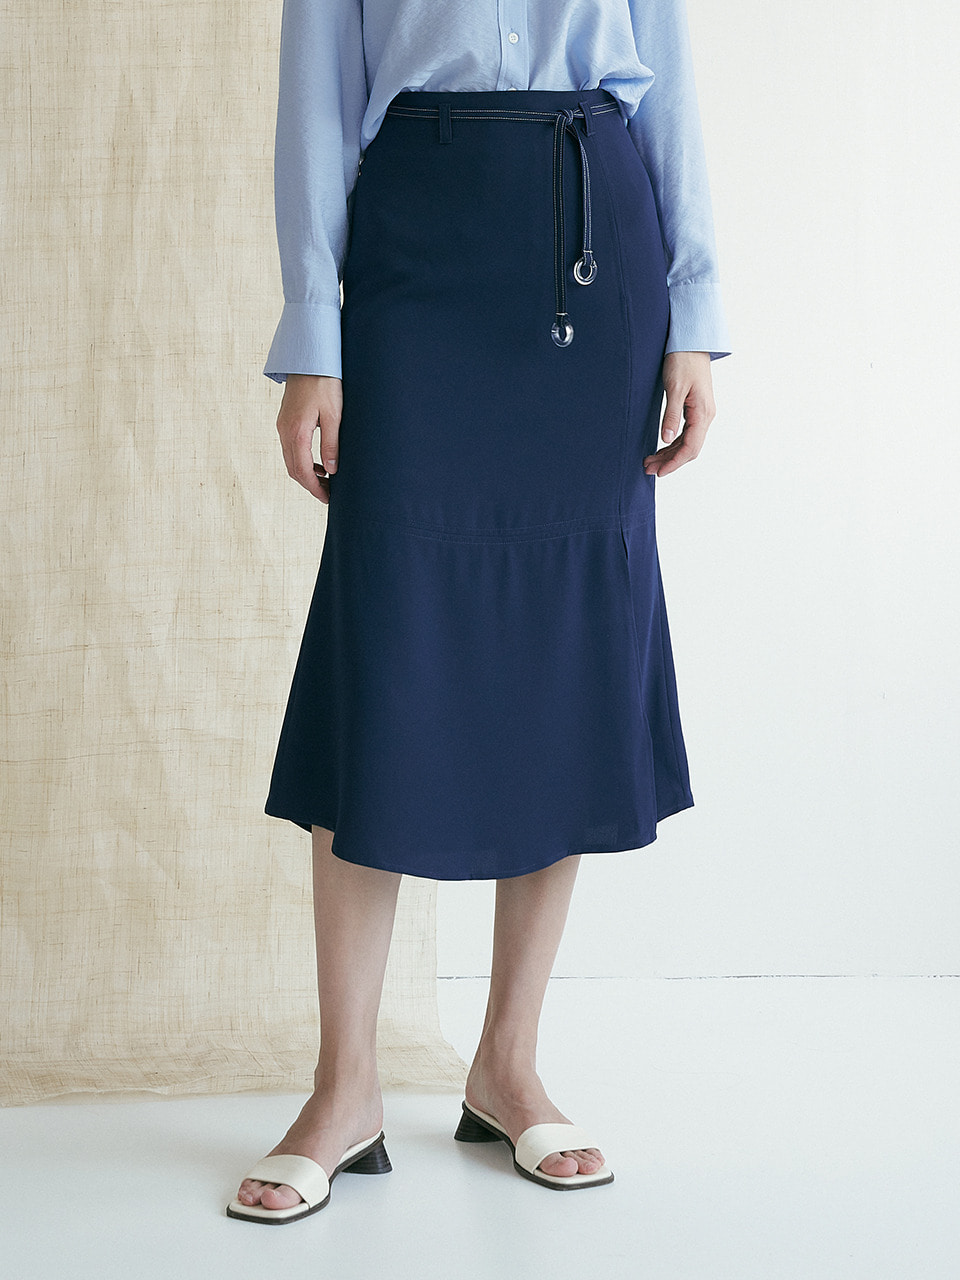 comos'372 belt point mermaid skirt (navy)